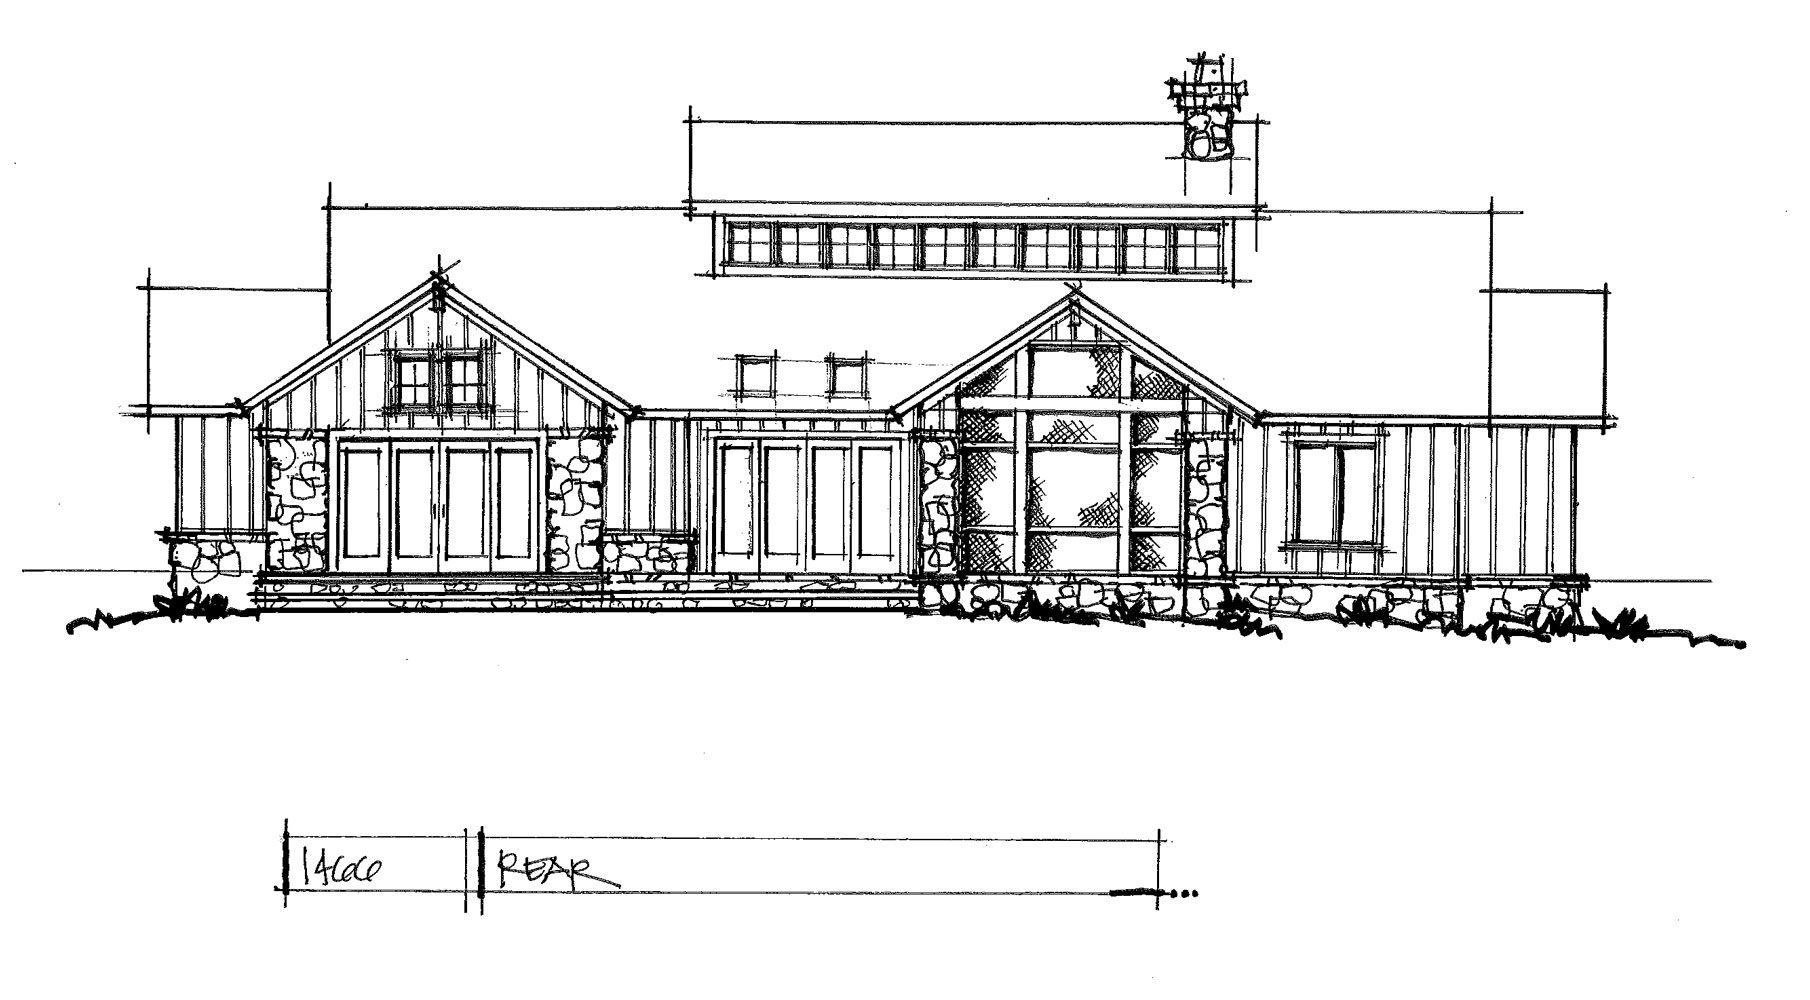 Check out the rear elevation of house plan 1466.